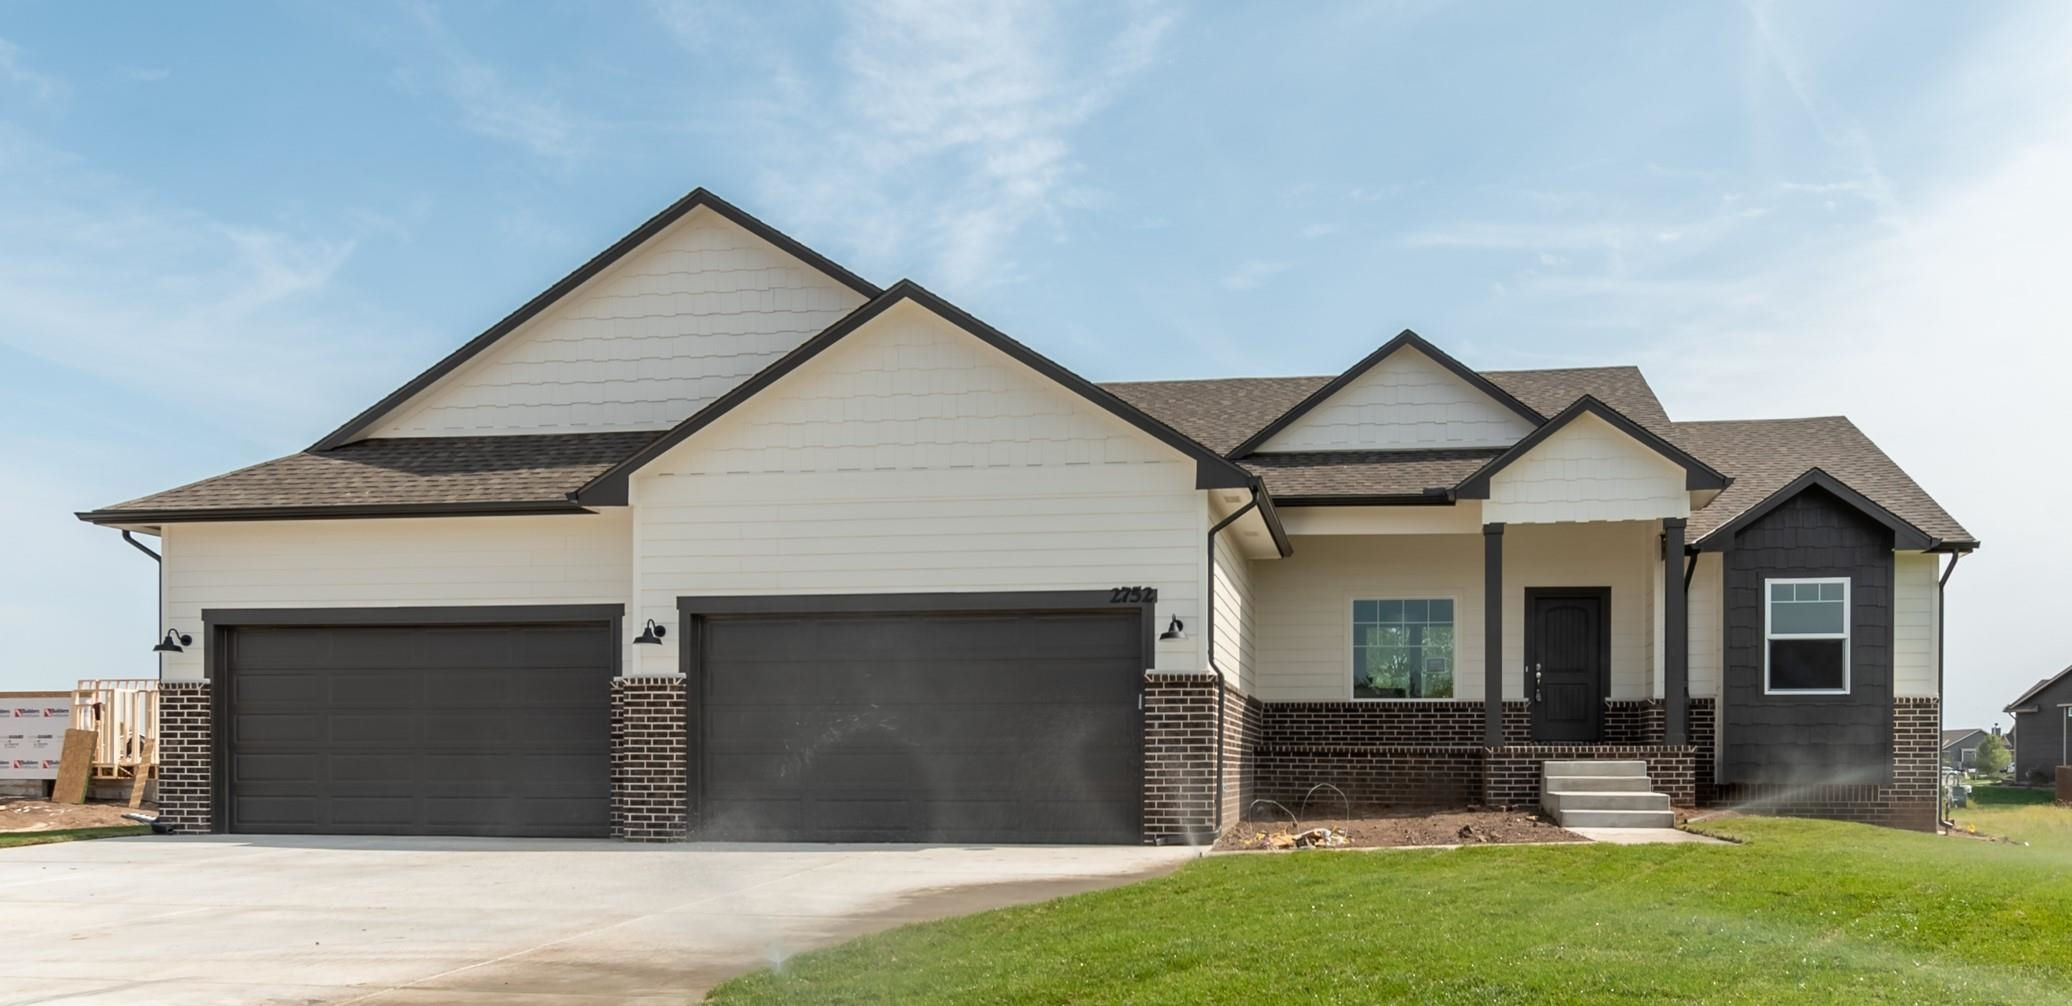 Another beautiful home designed by Miller Family Homes, Inc. This home features the ever-popular Sto